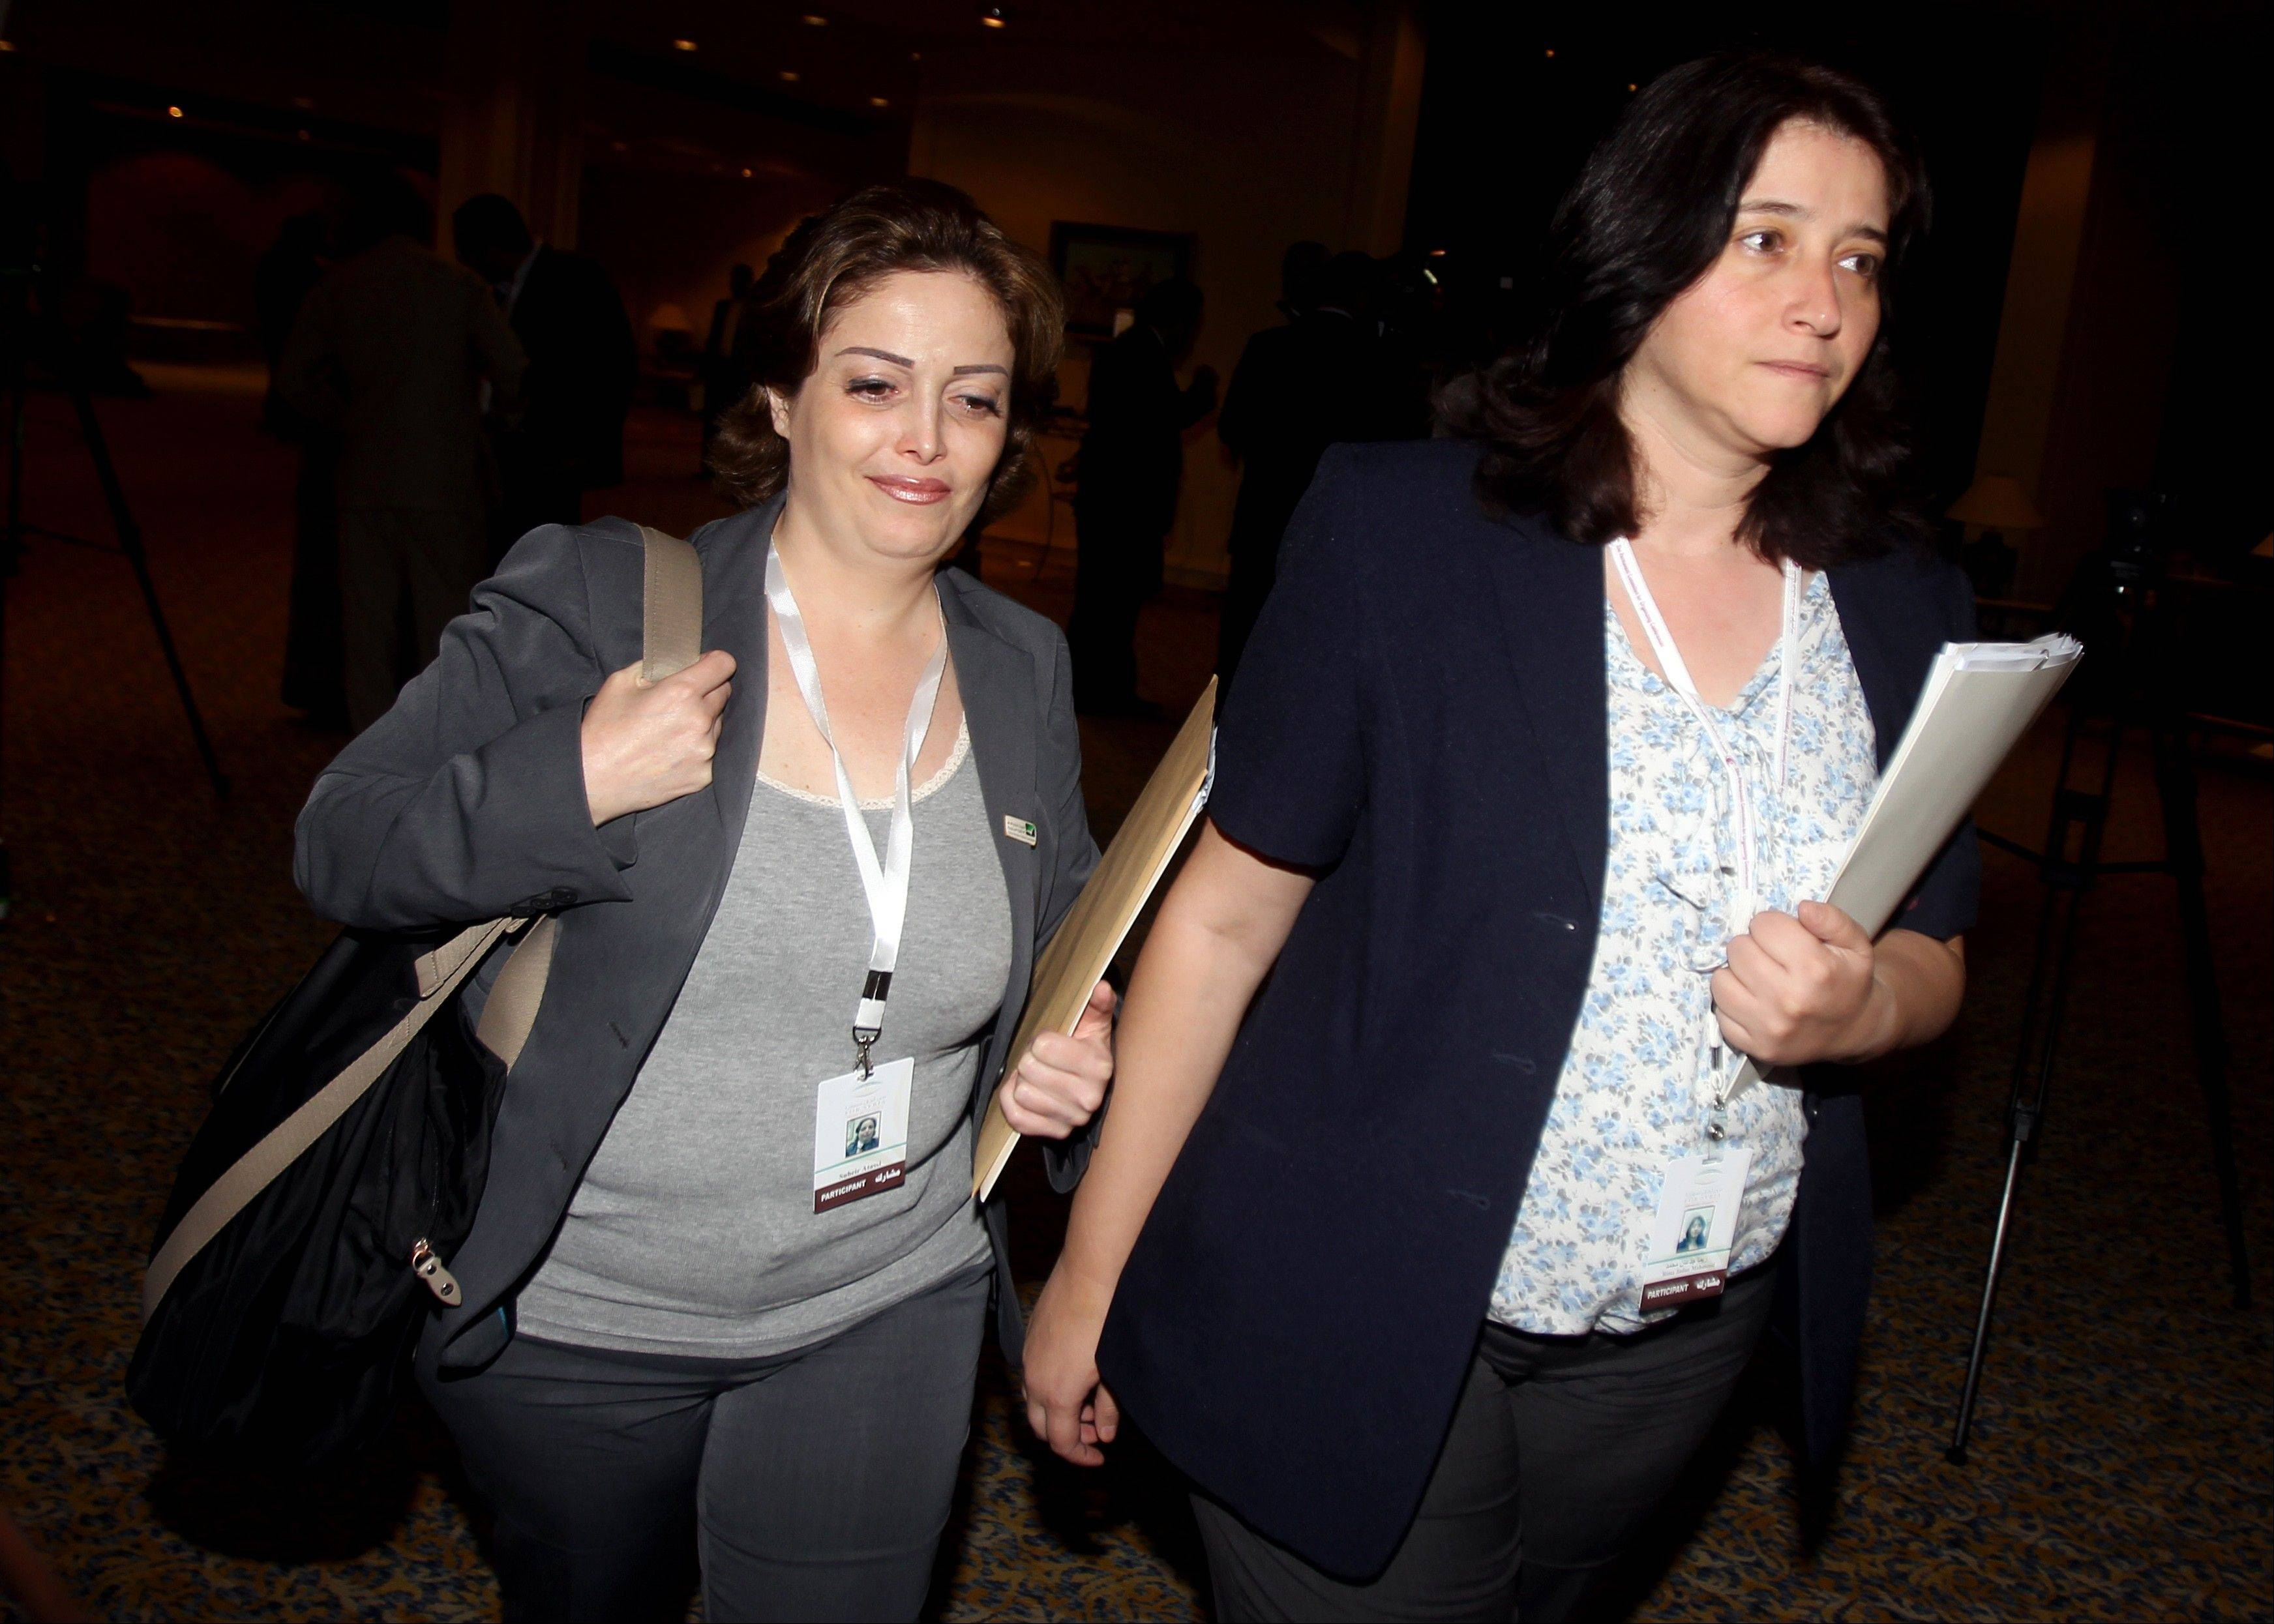 Syrian opposition members Suheir Atassi, left, and Rima Fleihan attend the meeting Thursday of the General Assembly of the Syrian National Council in Doha, Qatar.